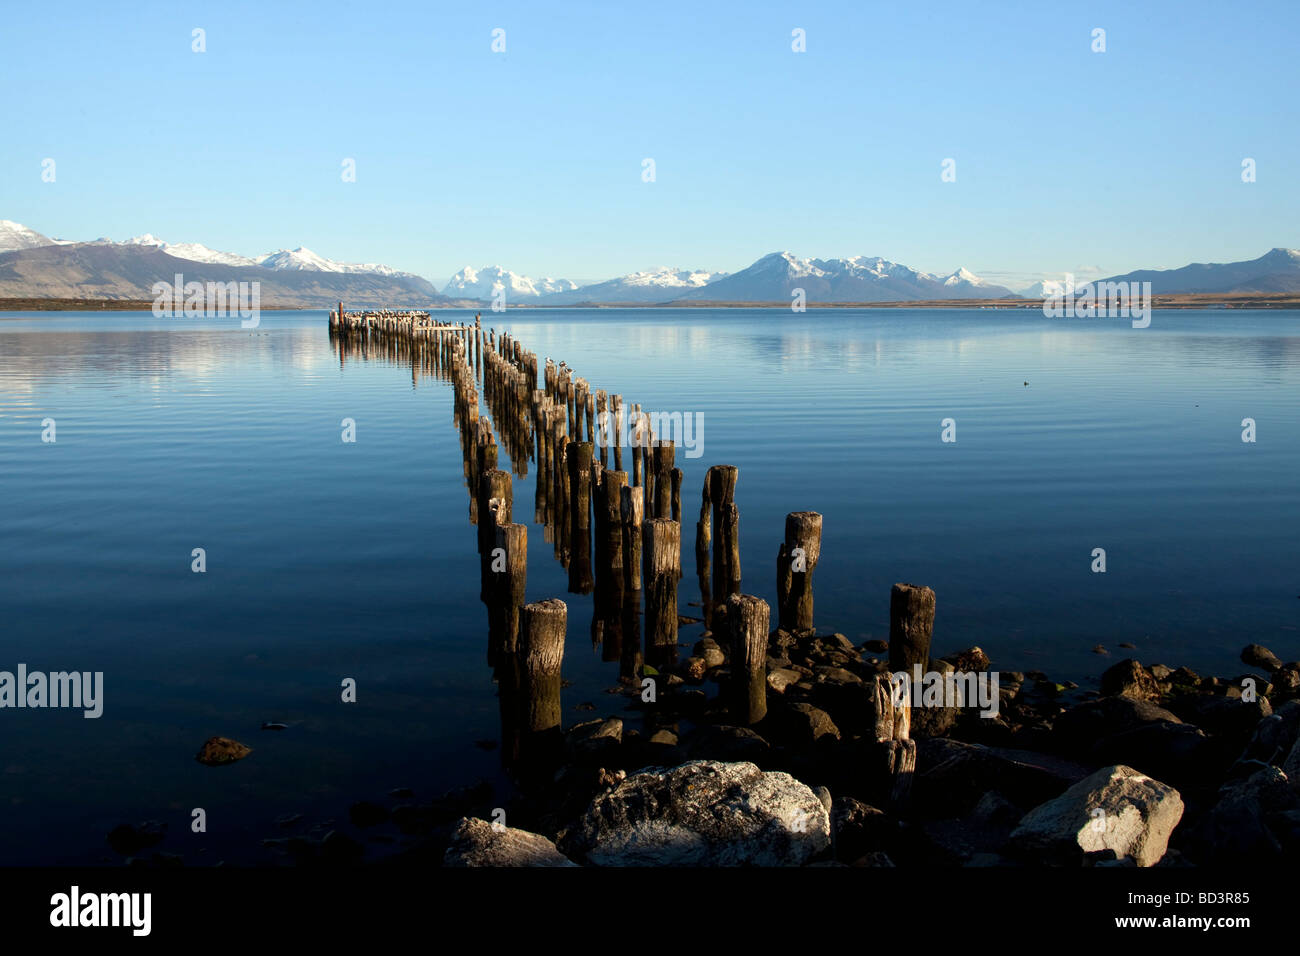 Cormorants Perching on Old Pier in Puerto Natales, Chile - Stock Image